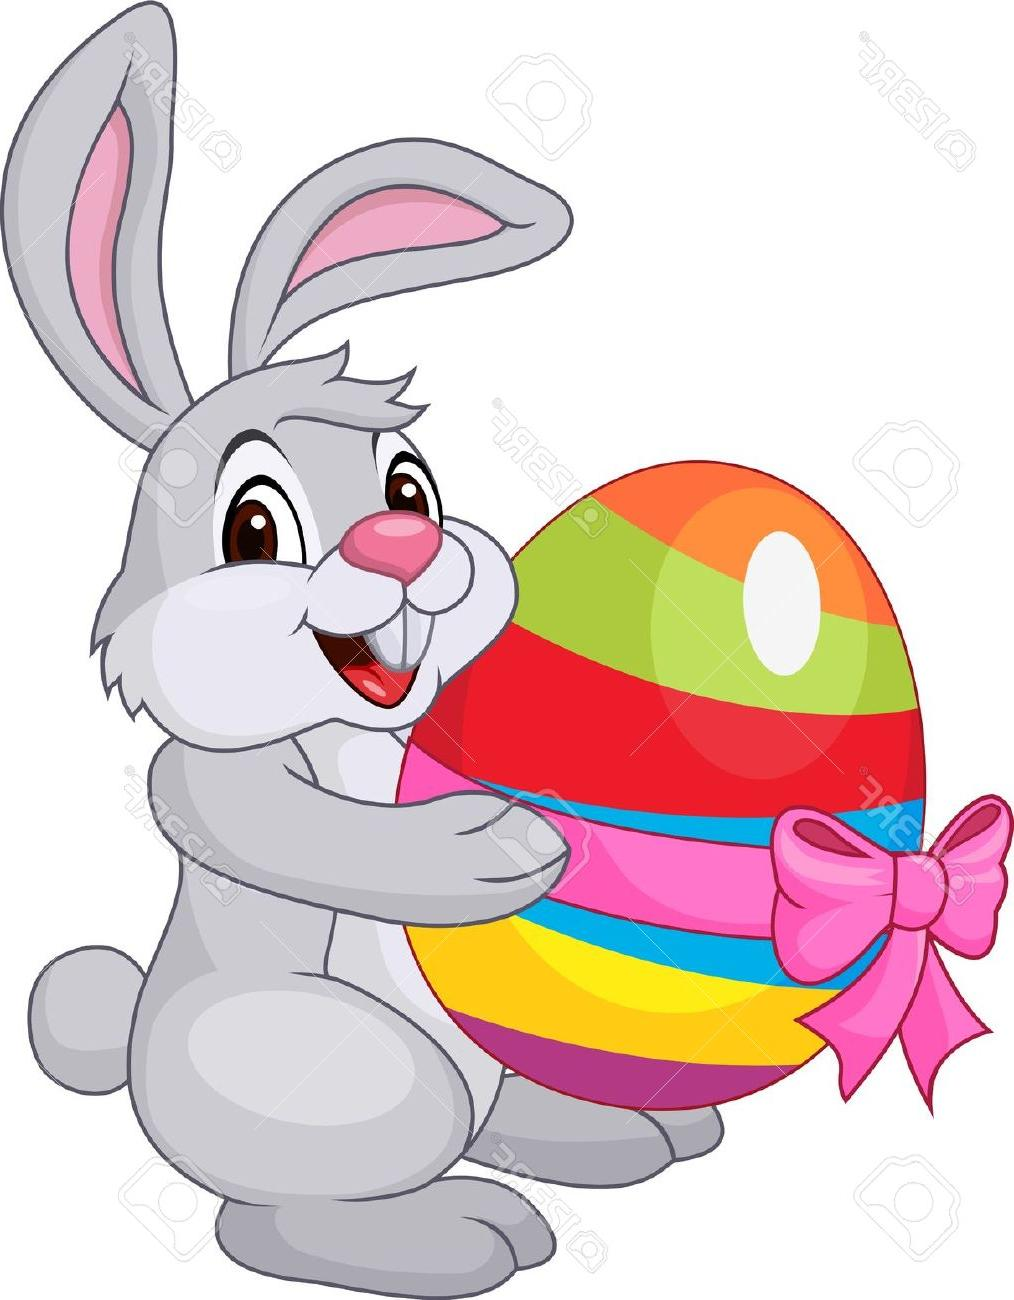 Clipart easter. Bunny backgrounds hd top